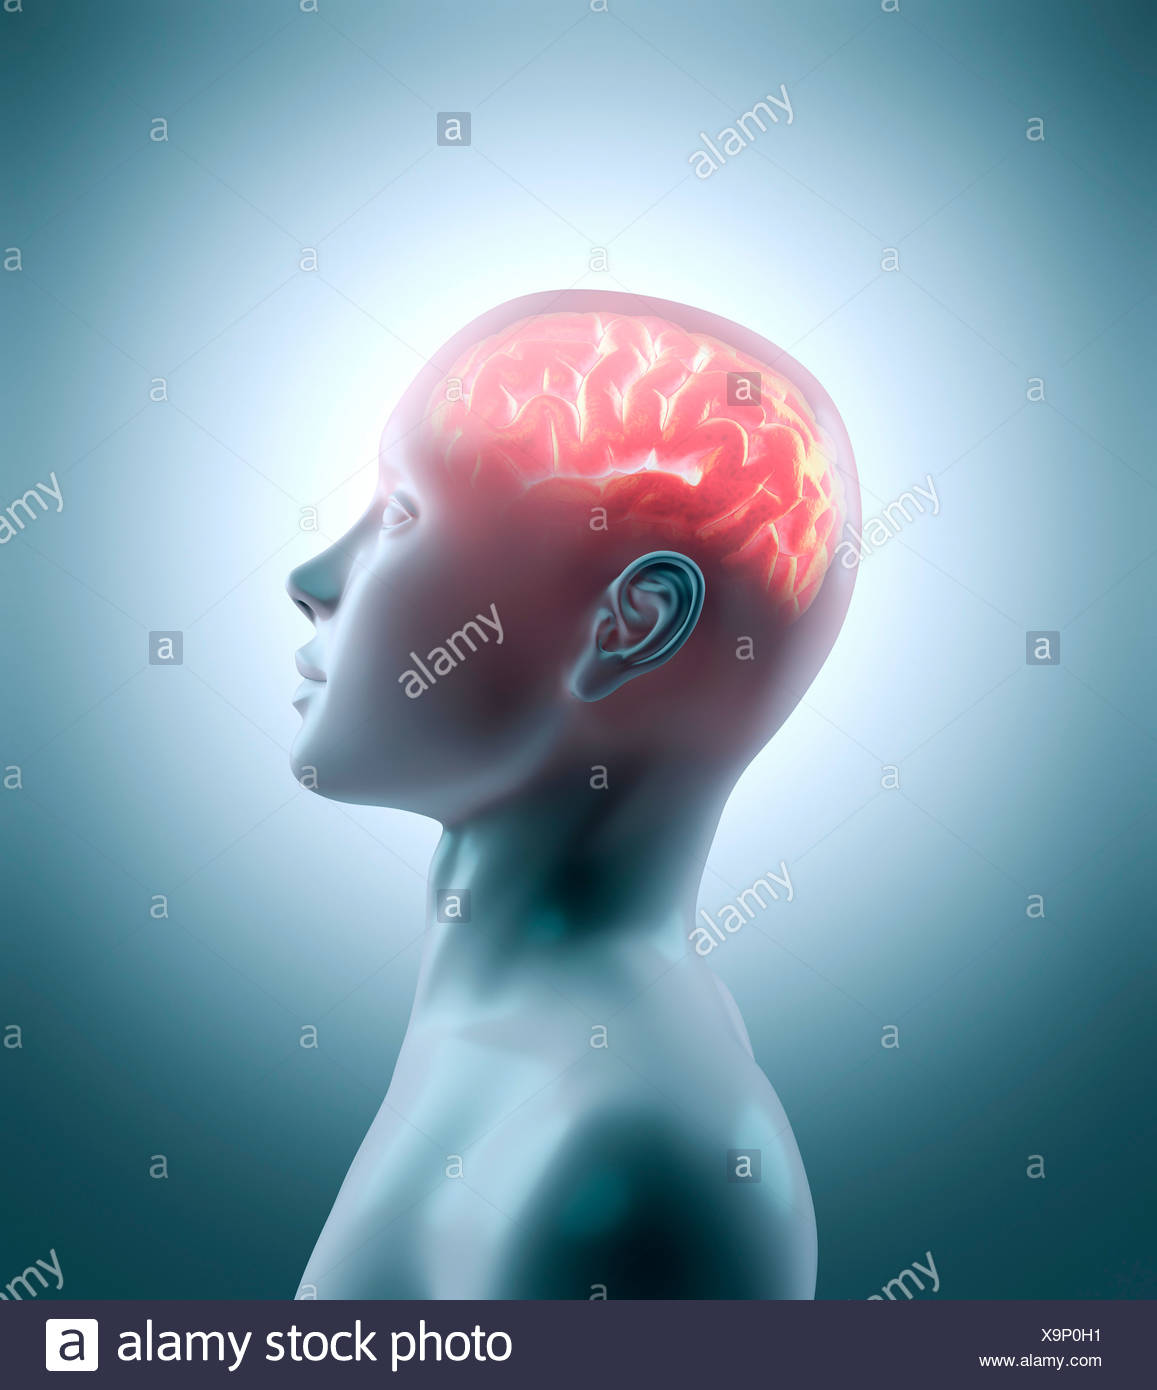 Human brain, artwork Stock Photo